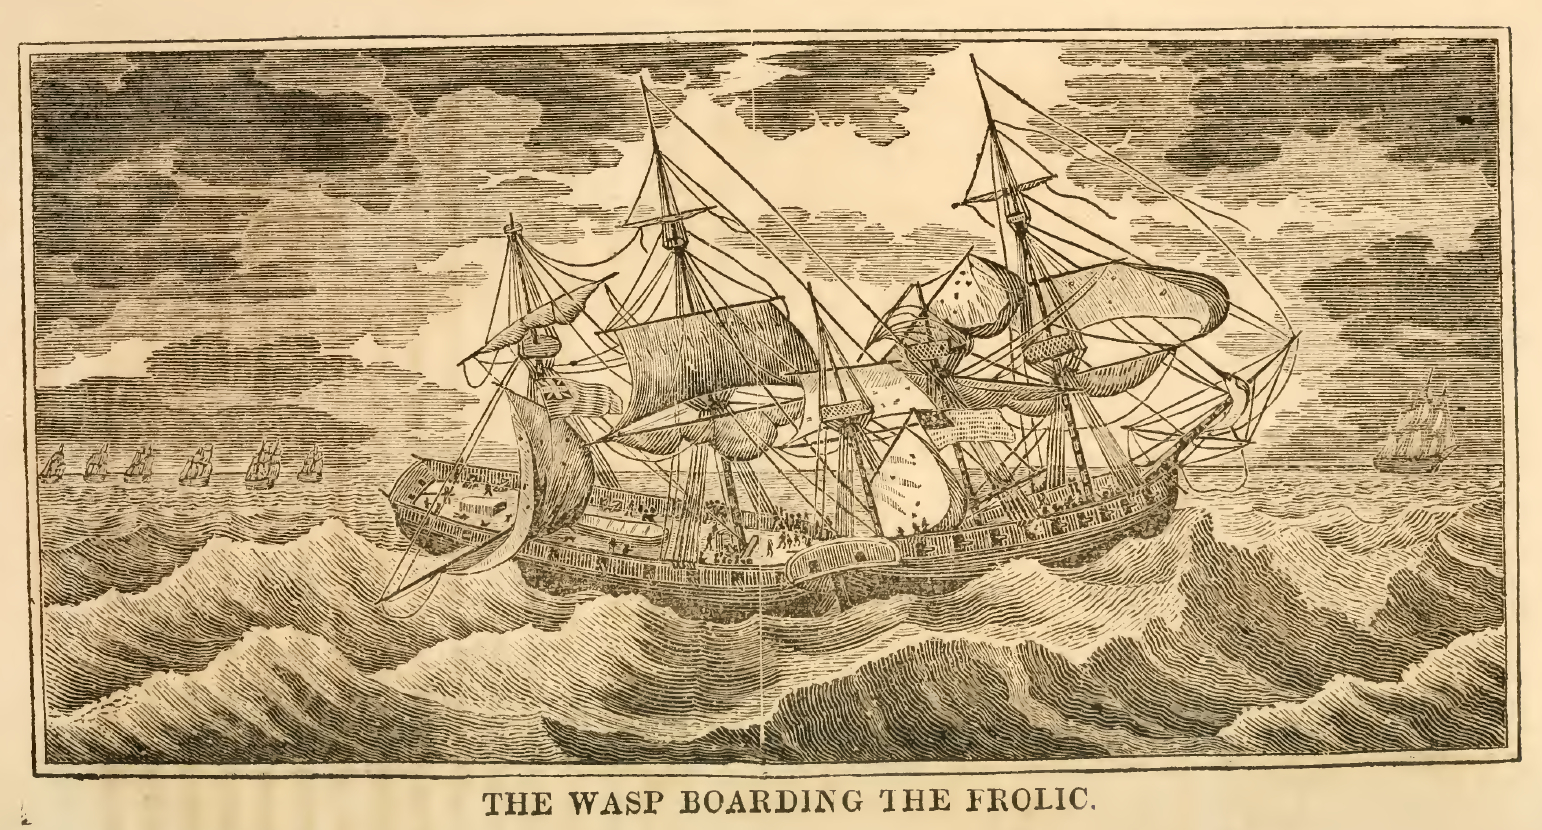 The Wasp Boarding the Frolic